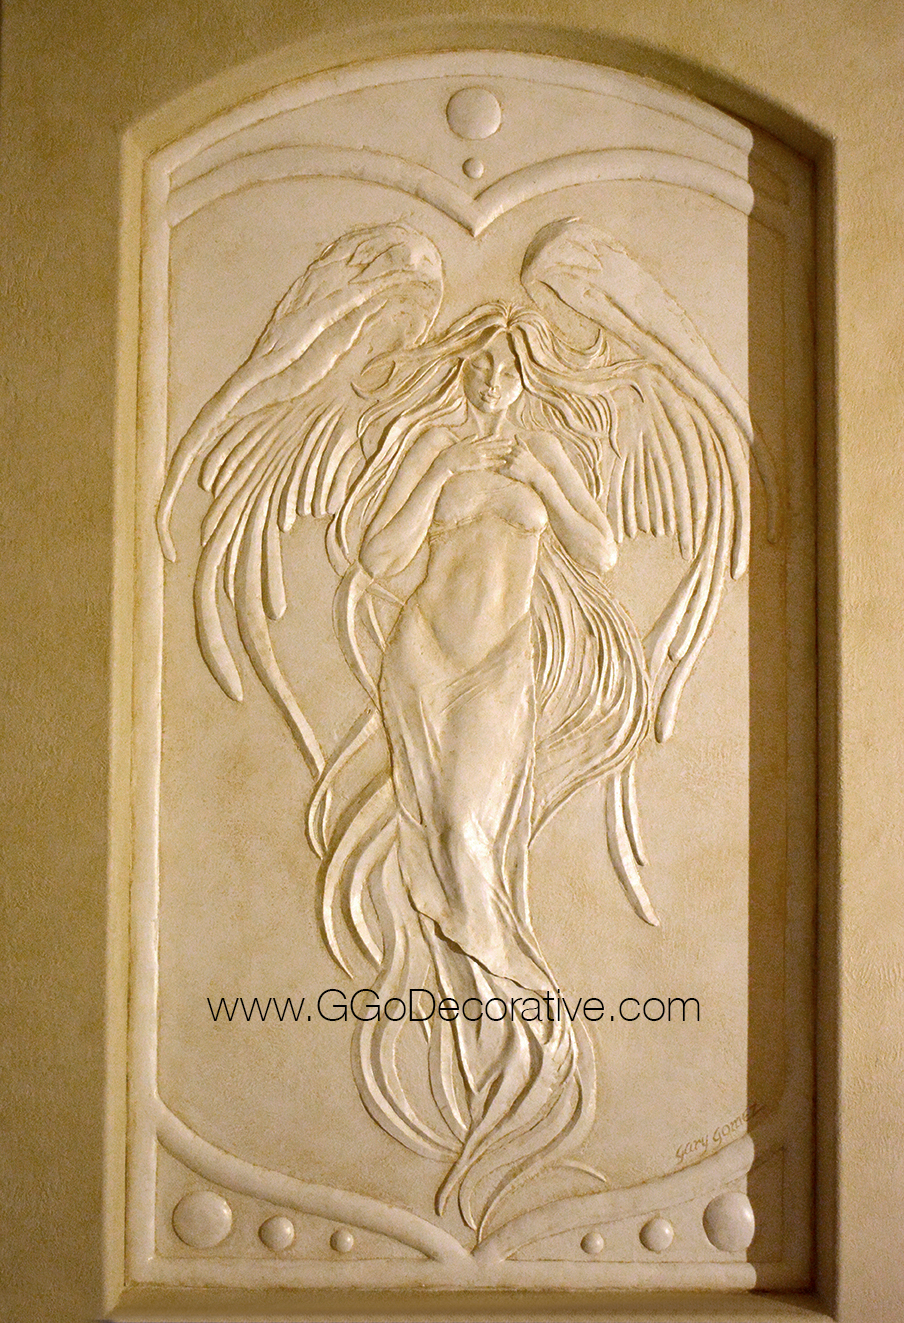 Angel Bas Relief Sculptural Mural Wall Art Project : G. Go Decorative